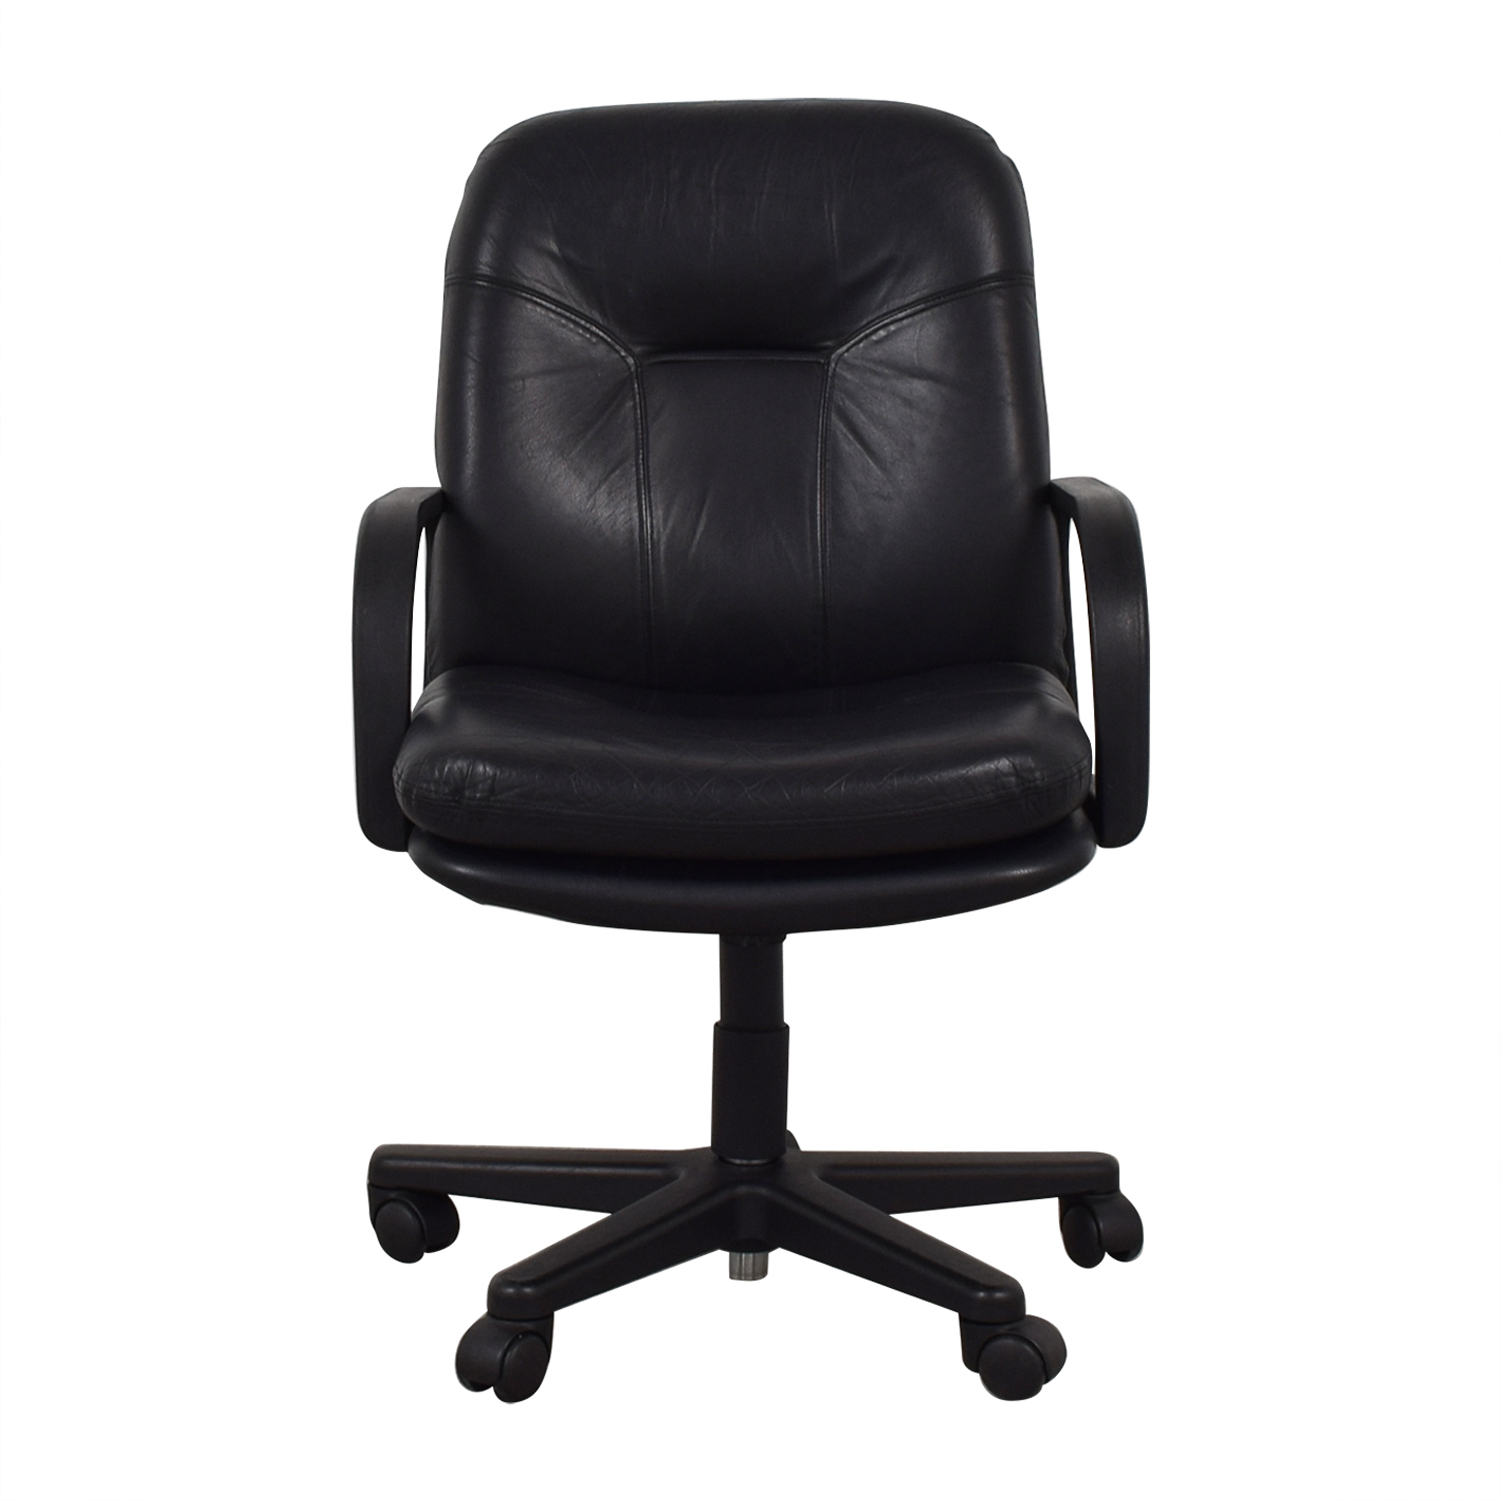 84 Off Black Office Arm Chair Chairs